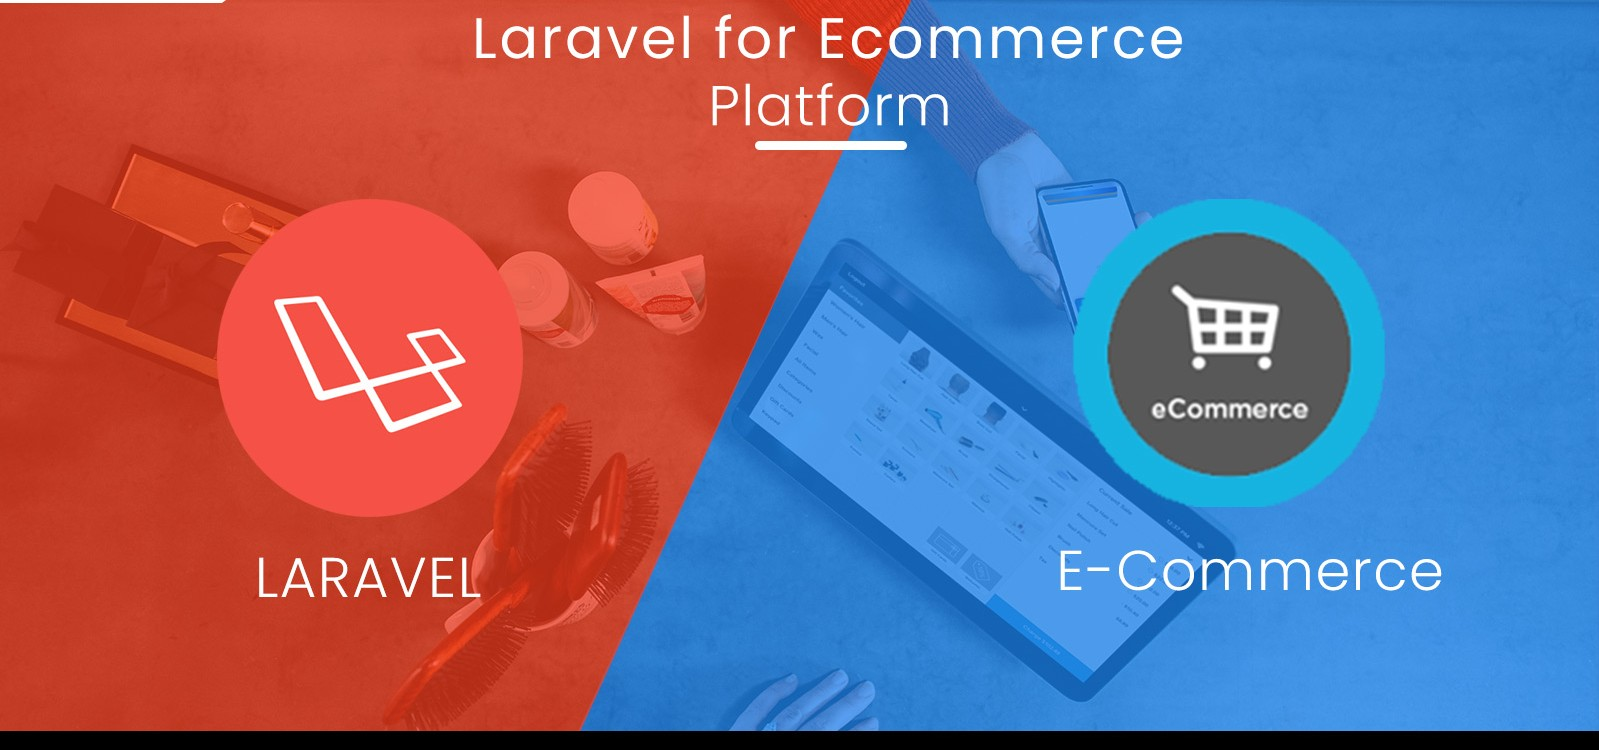 How Laravel will helpful for Ecommerce Platforms